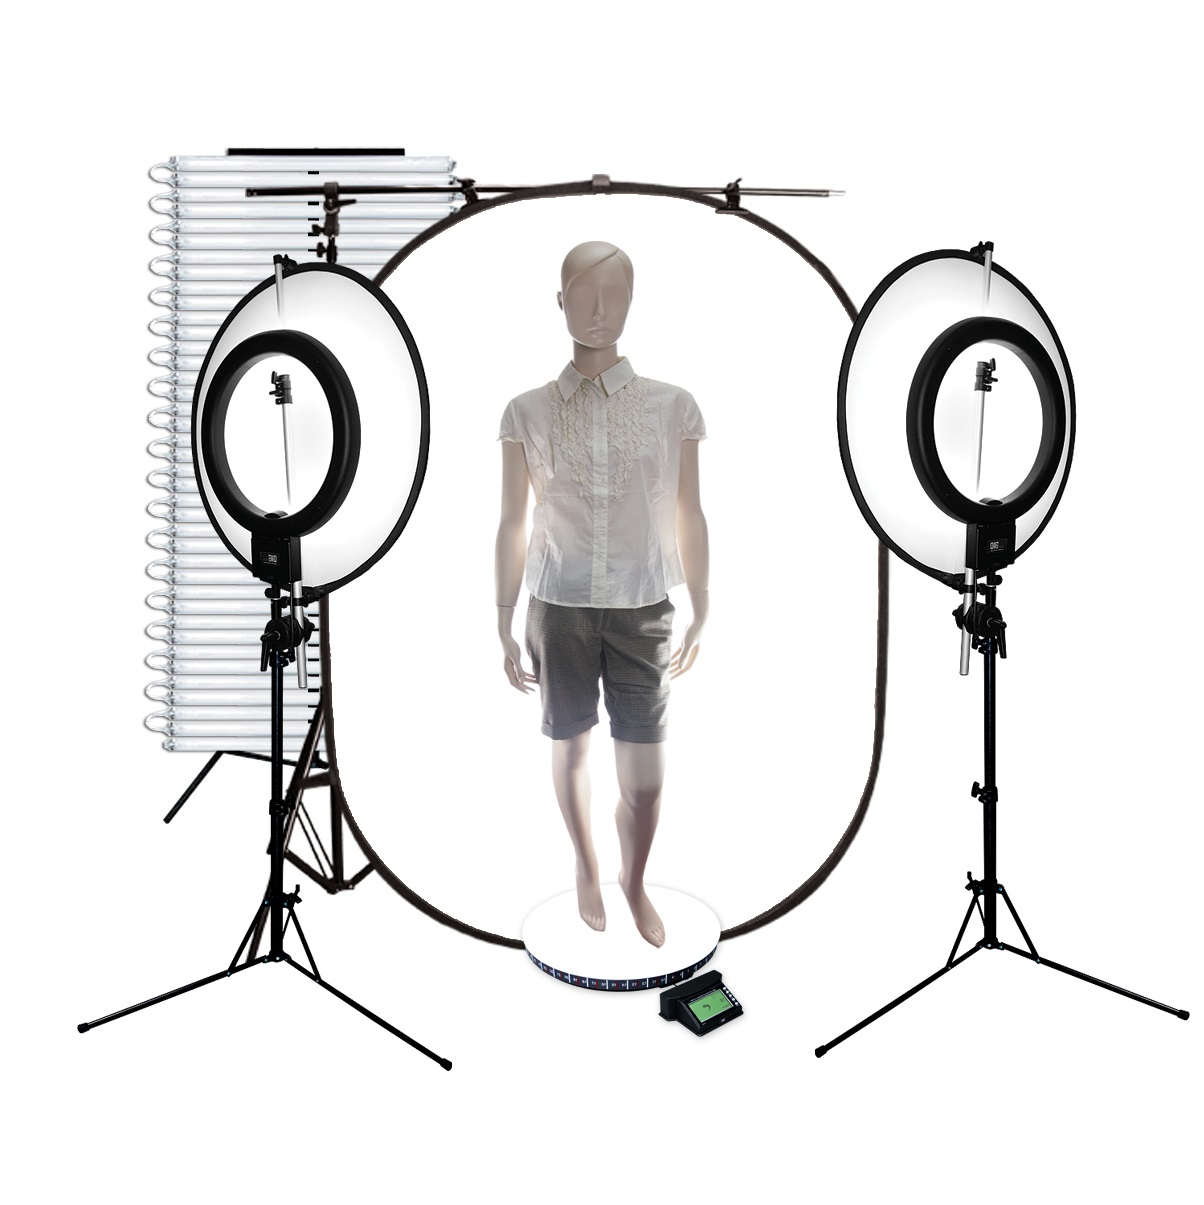 DigPro 2 in 1 Series + professional back lighting set